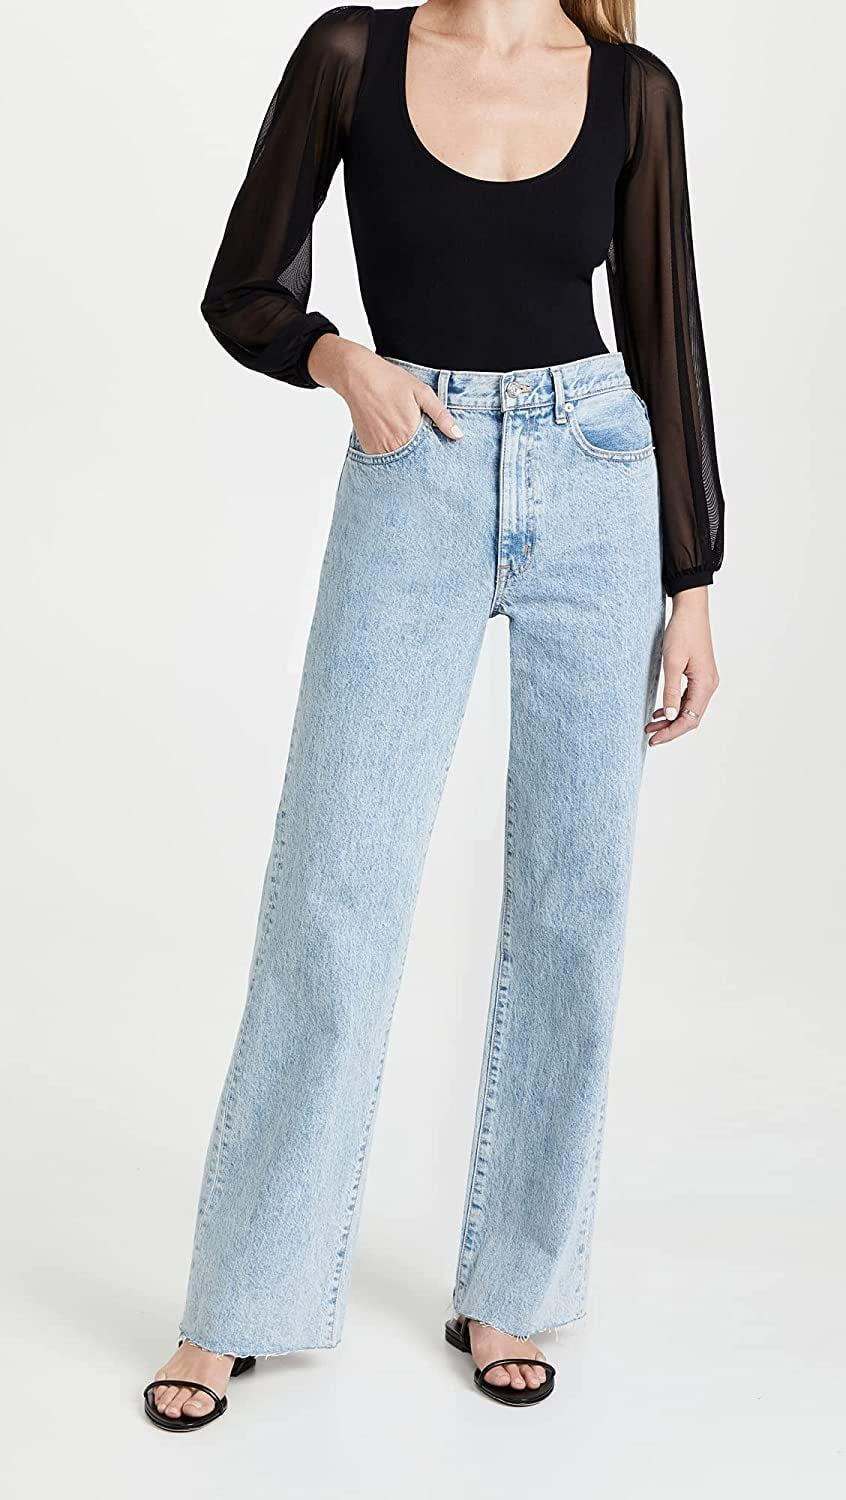 <p>This <span>Free People Lost in Love Seamless Top</span> ($48) is a perfect piece to pair with jeans or wear under a jacket. It looks cute in it's own right, and also works as a great layering piece.</p>